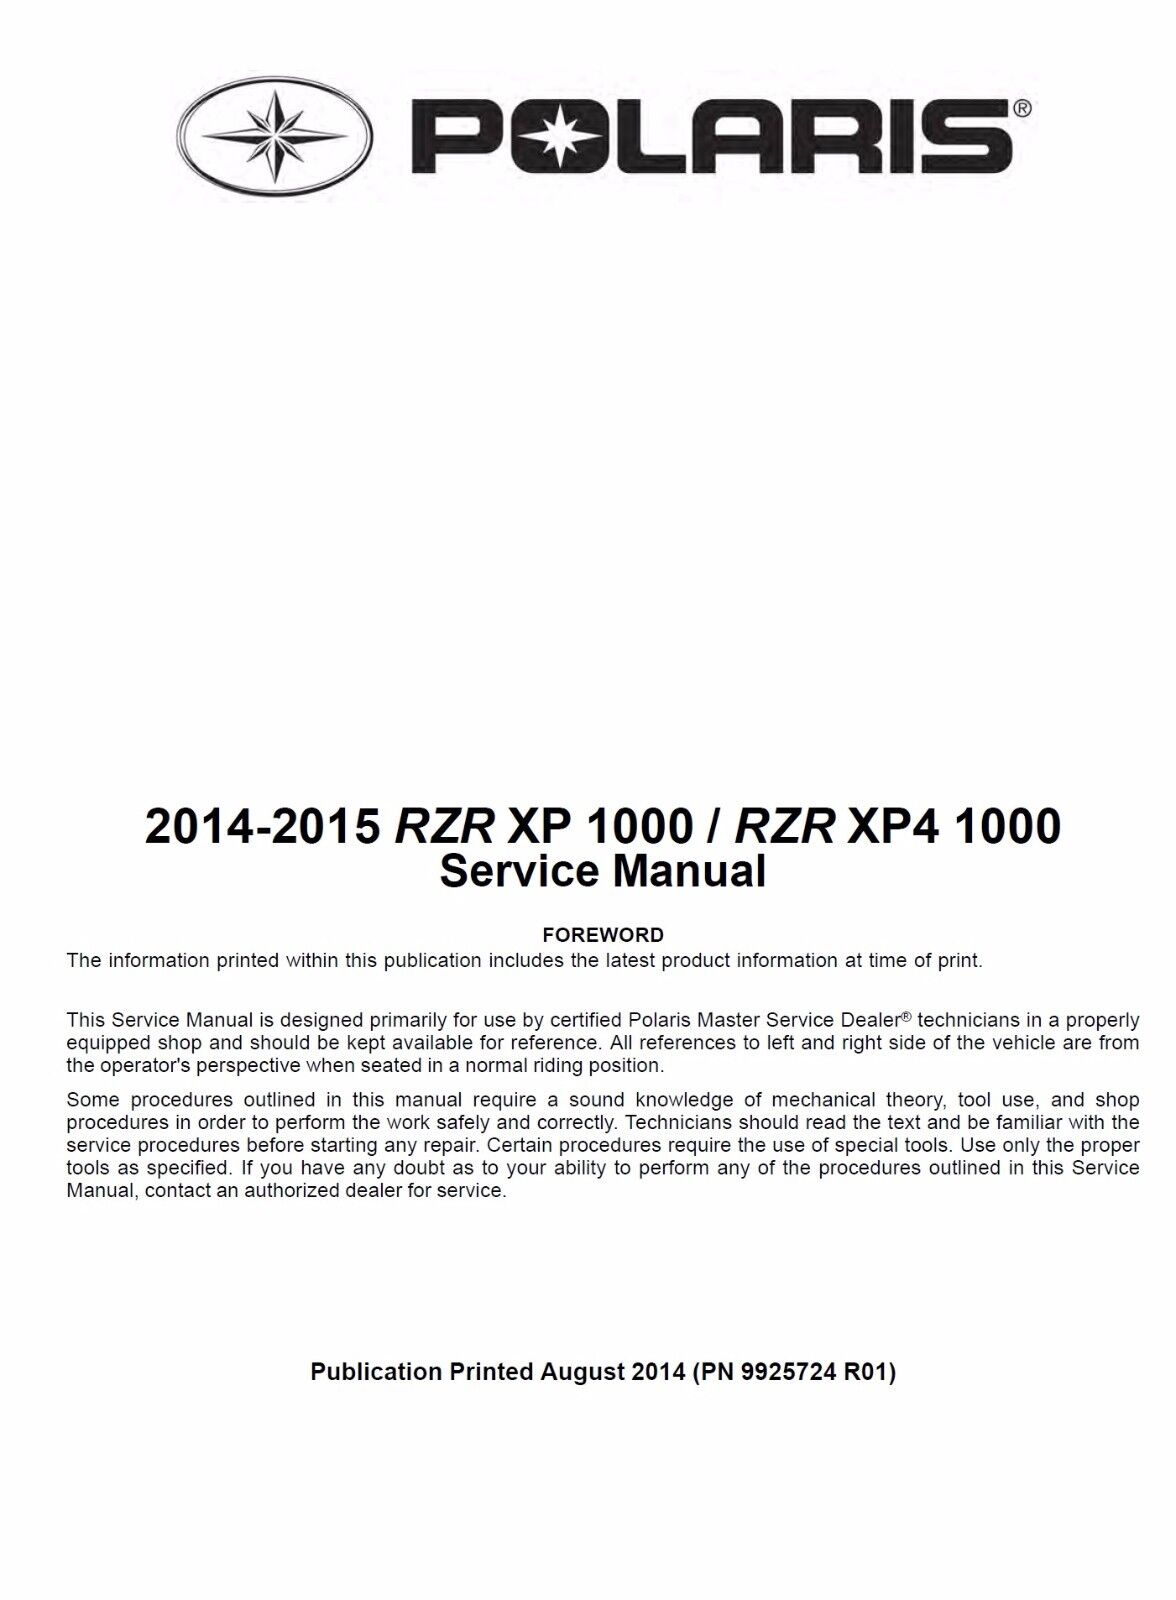 ... Array - polaris 2014 2015 rzr xp 1000 xp4 1000 utv service manual w  binder rh